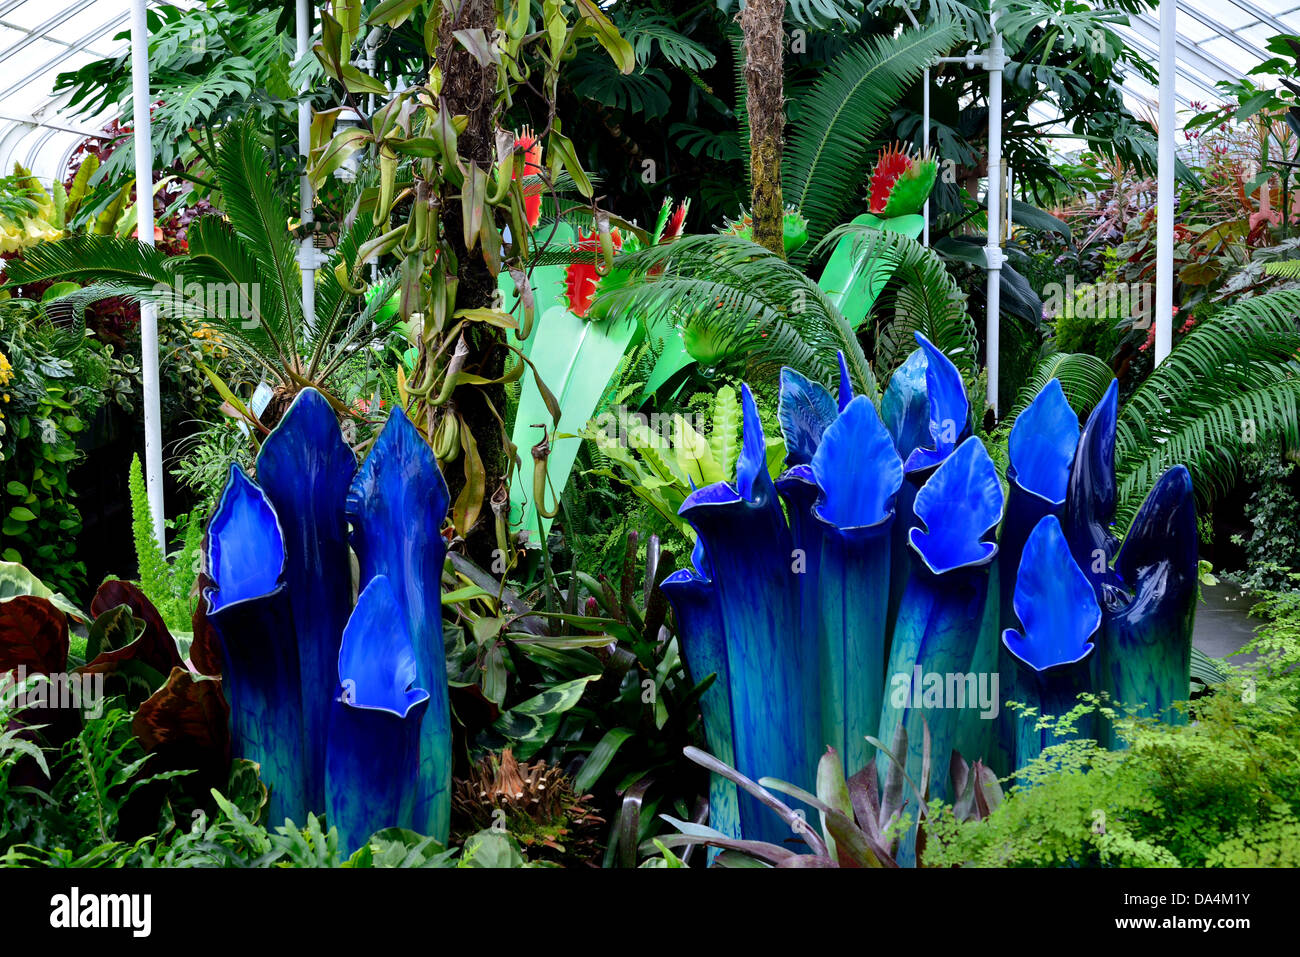 Art glass carnivores plants, in display at the Volunteer Park. Seattle, Washington, USA. - Stock Image